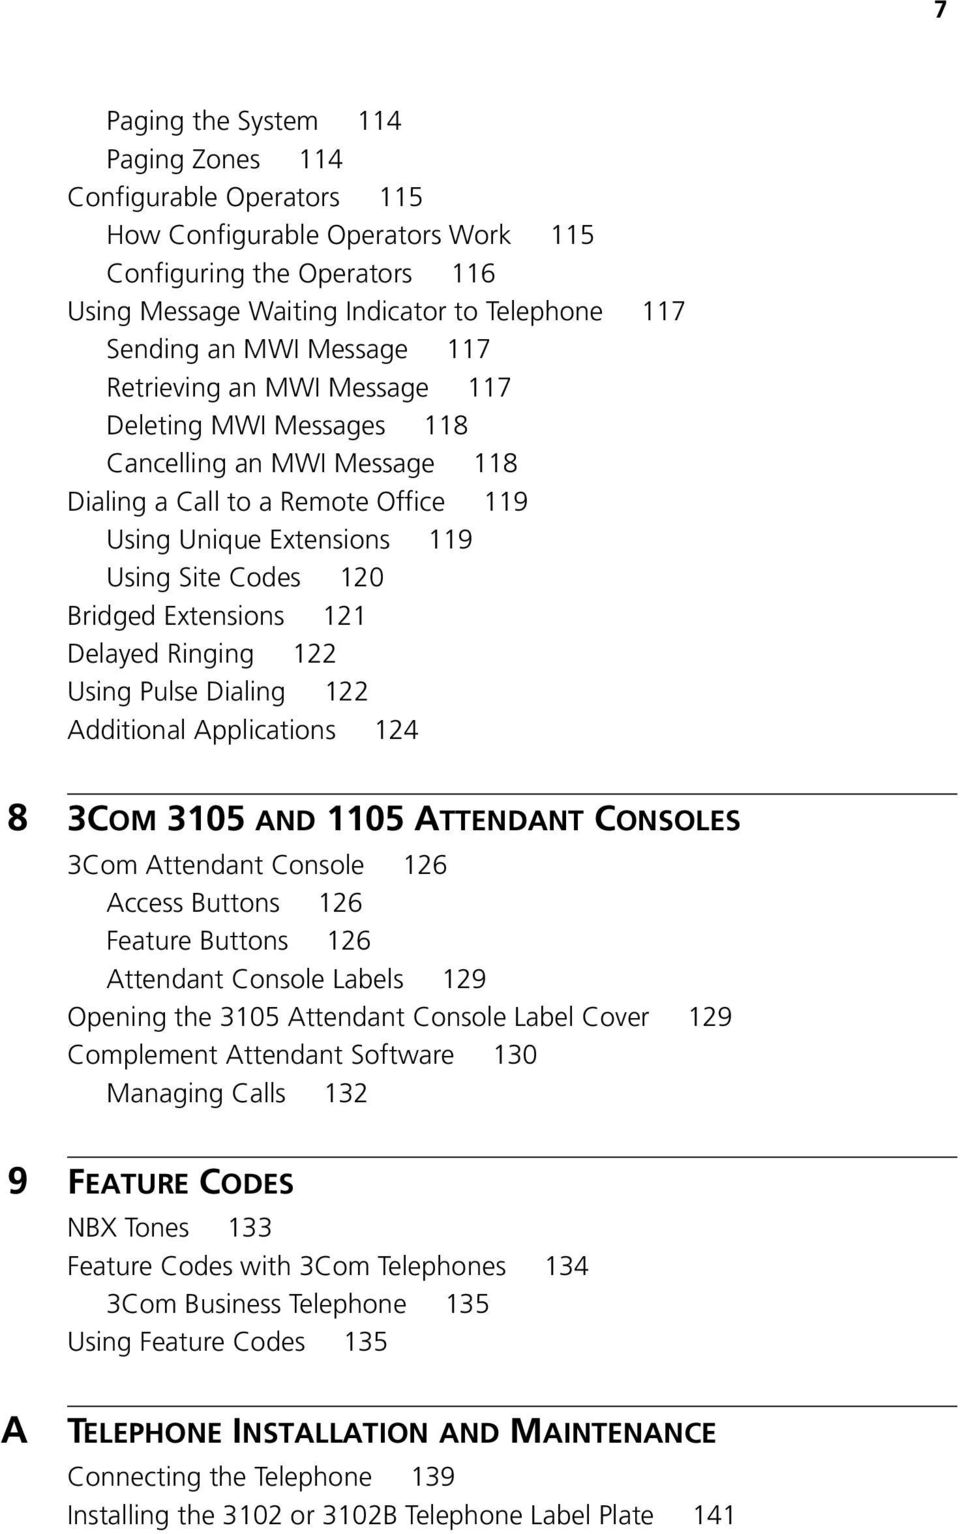 Extensions 121 Delayed Ringing 122 Using Pulse Dialing 122 Additional Applications 124 8 3COM 3105 AND 1105 ATTENDANT CONSOLES 3Com Attendant Console 126 Access Buttons 126 Feature Buttons 126